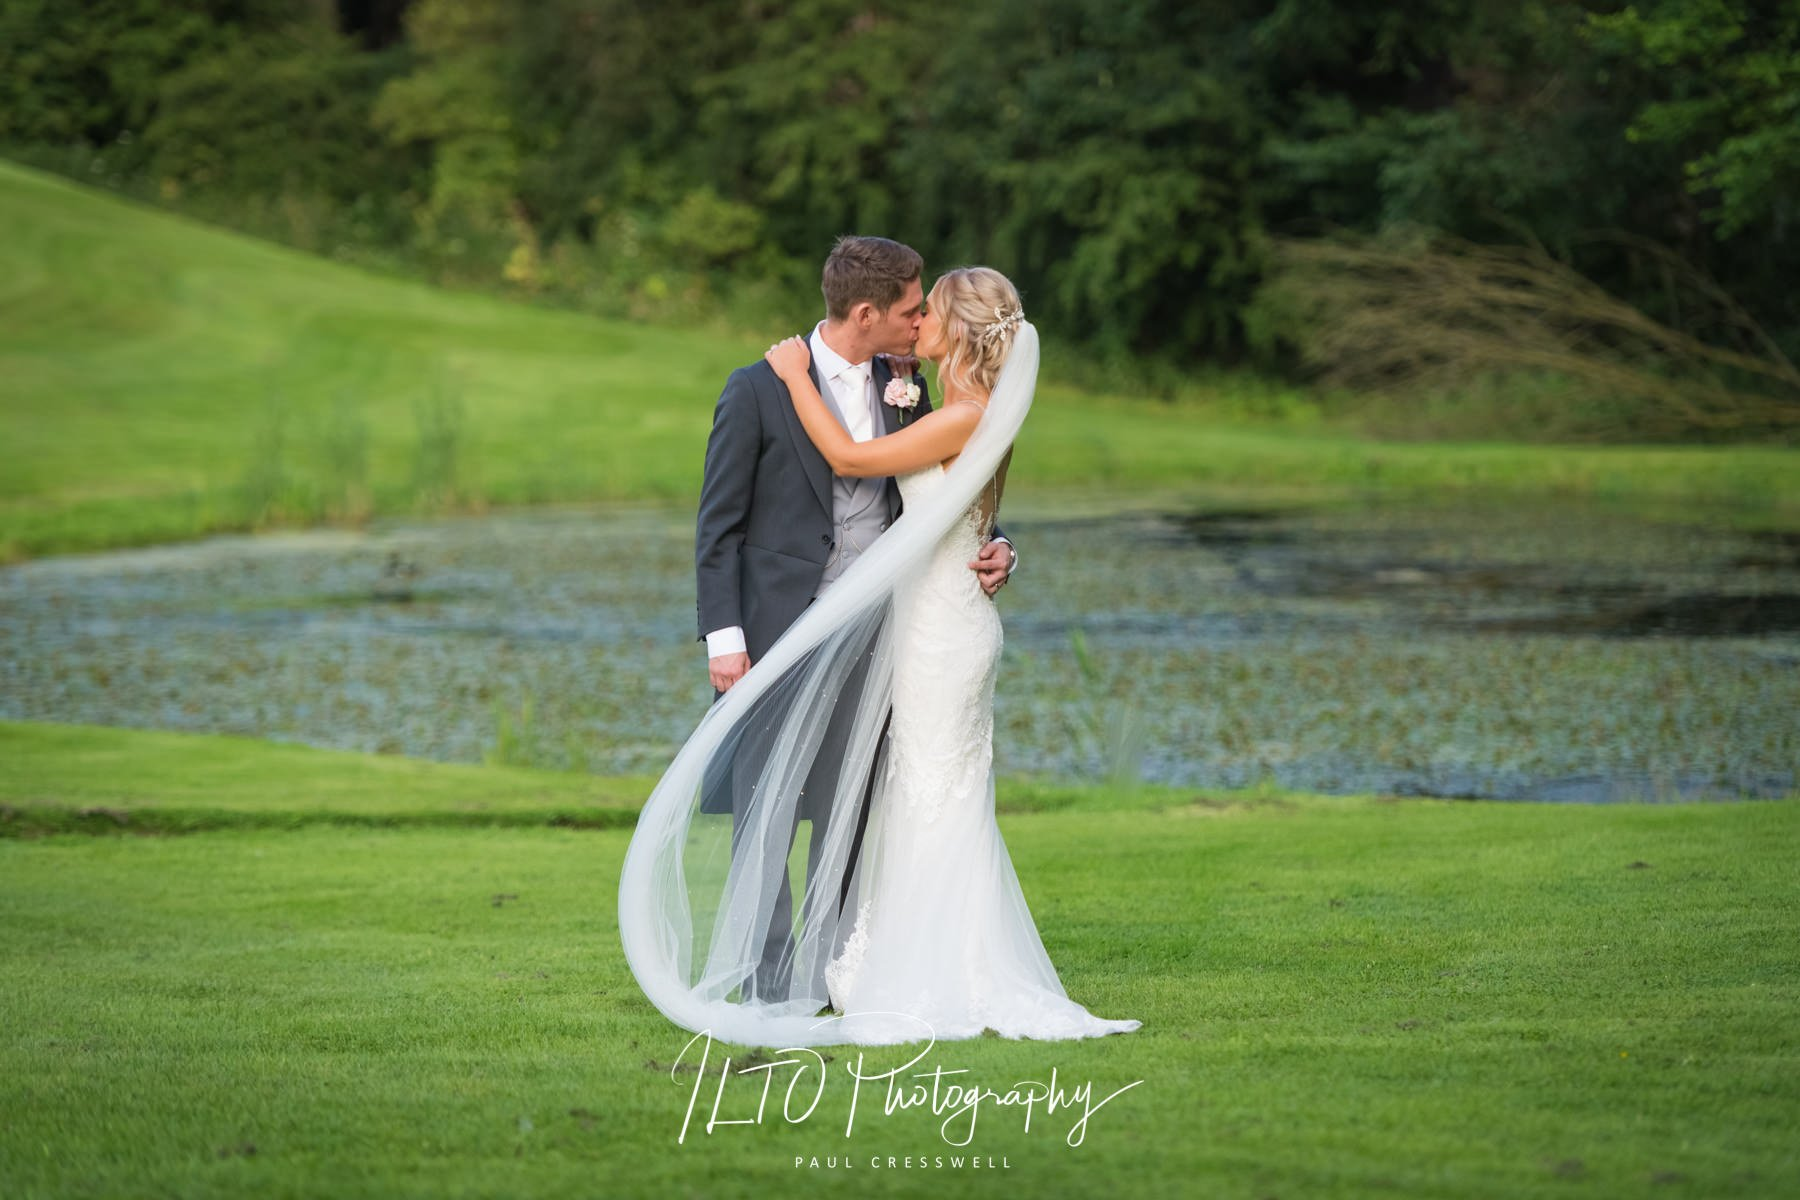 affordable stunning wedding photography wakefield leeds yorkshire